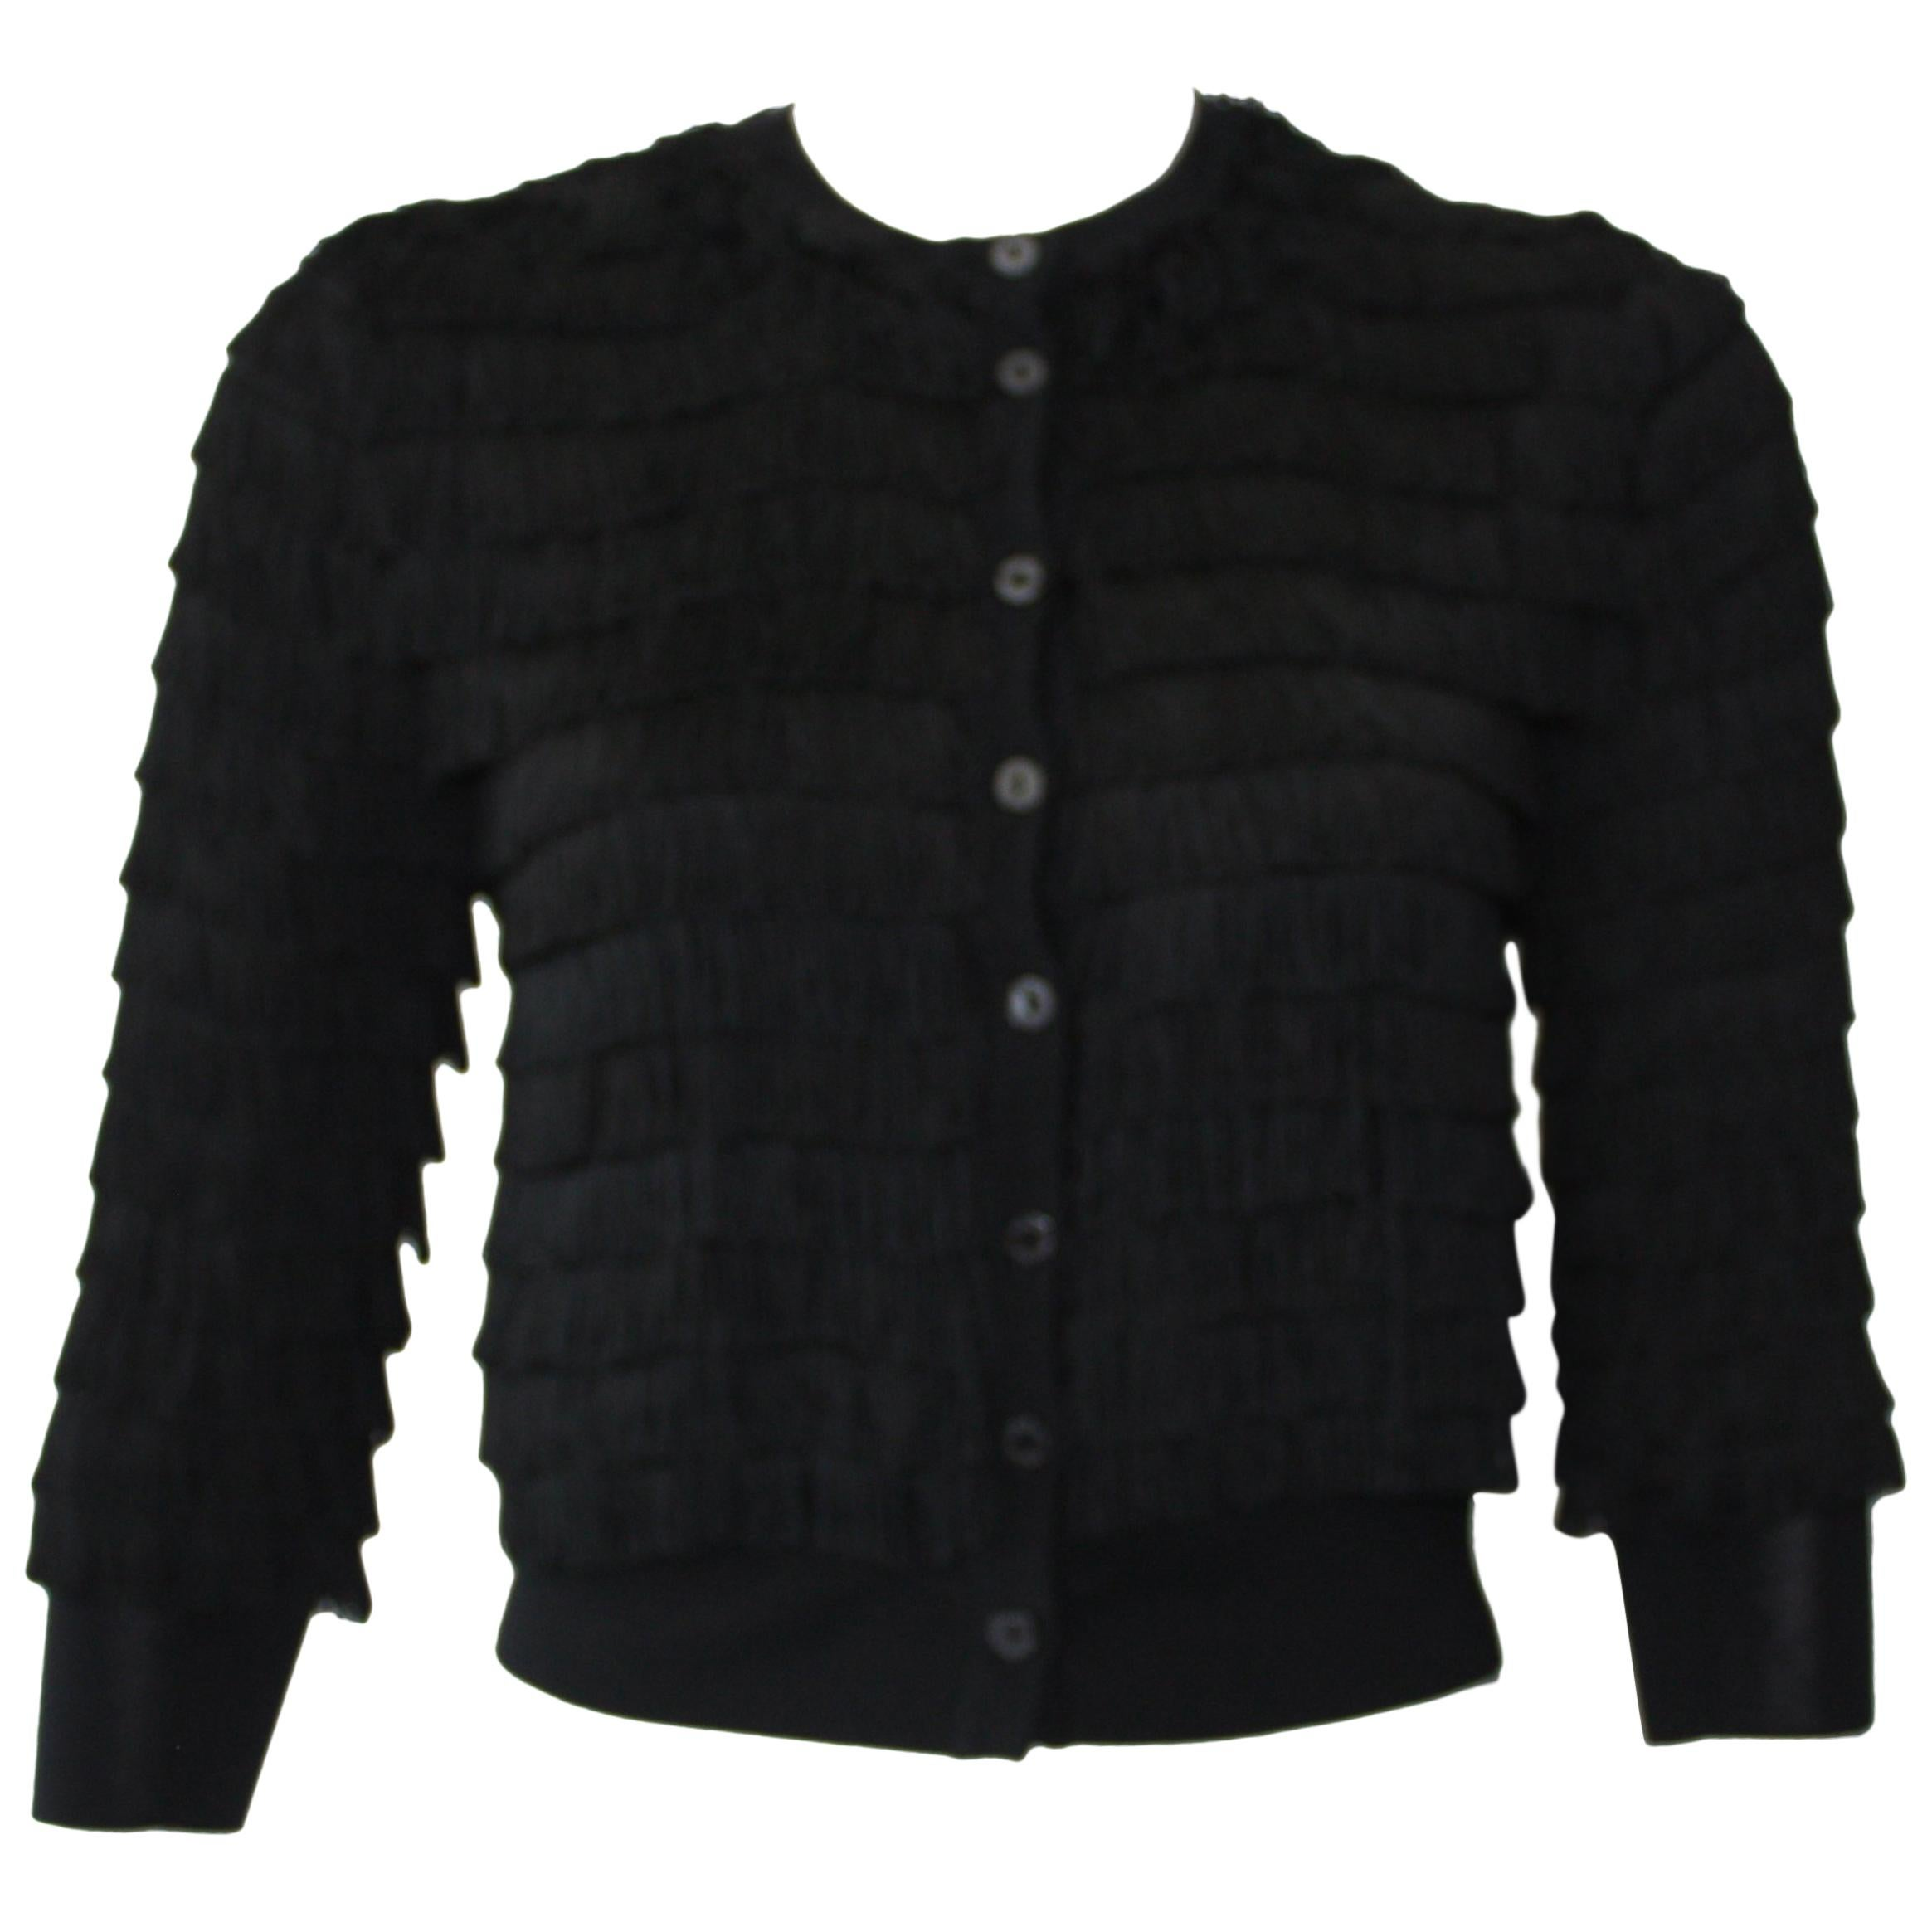 Dolce and Gabbana Special Edition Black Fringe Cardigan Size XS